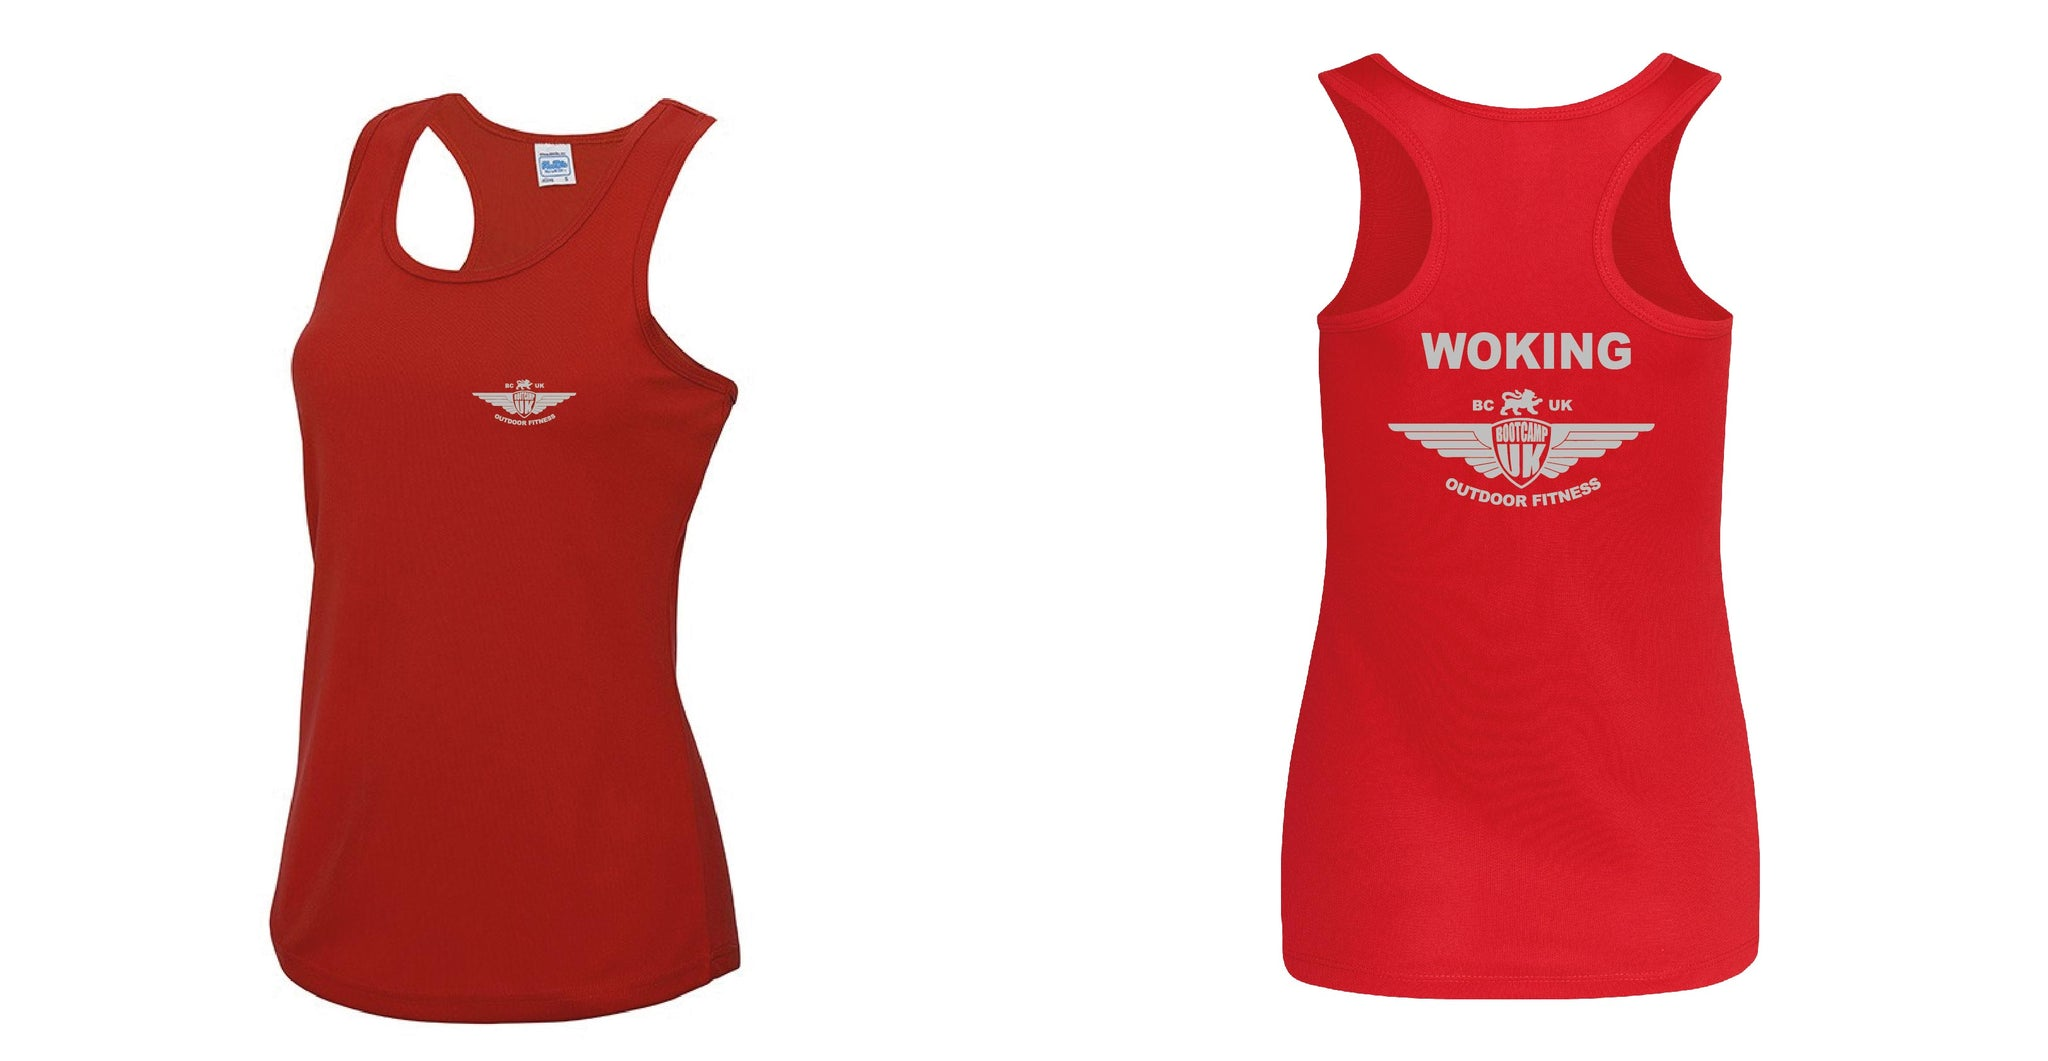 Woking Ladies Vest